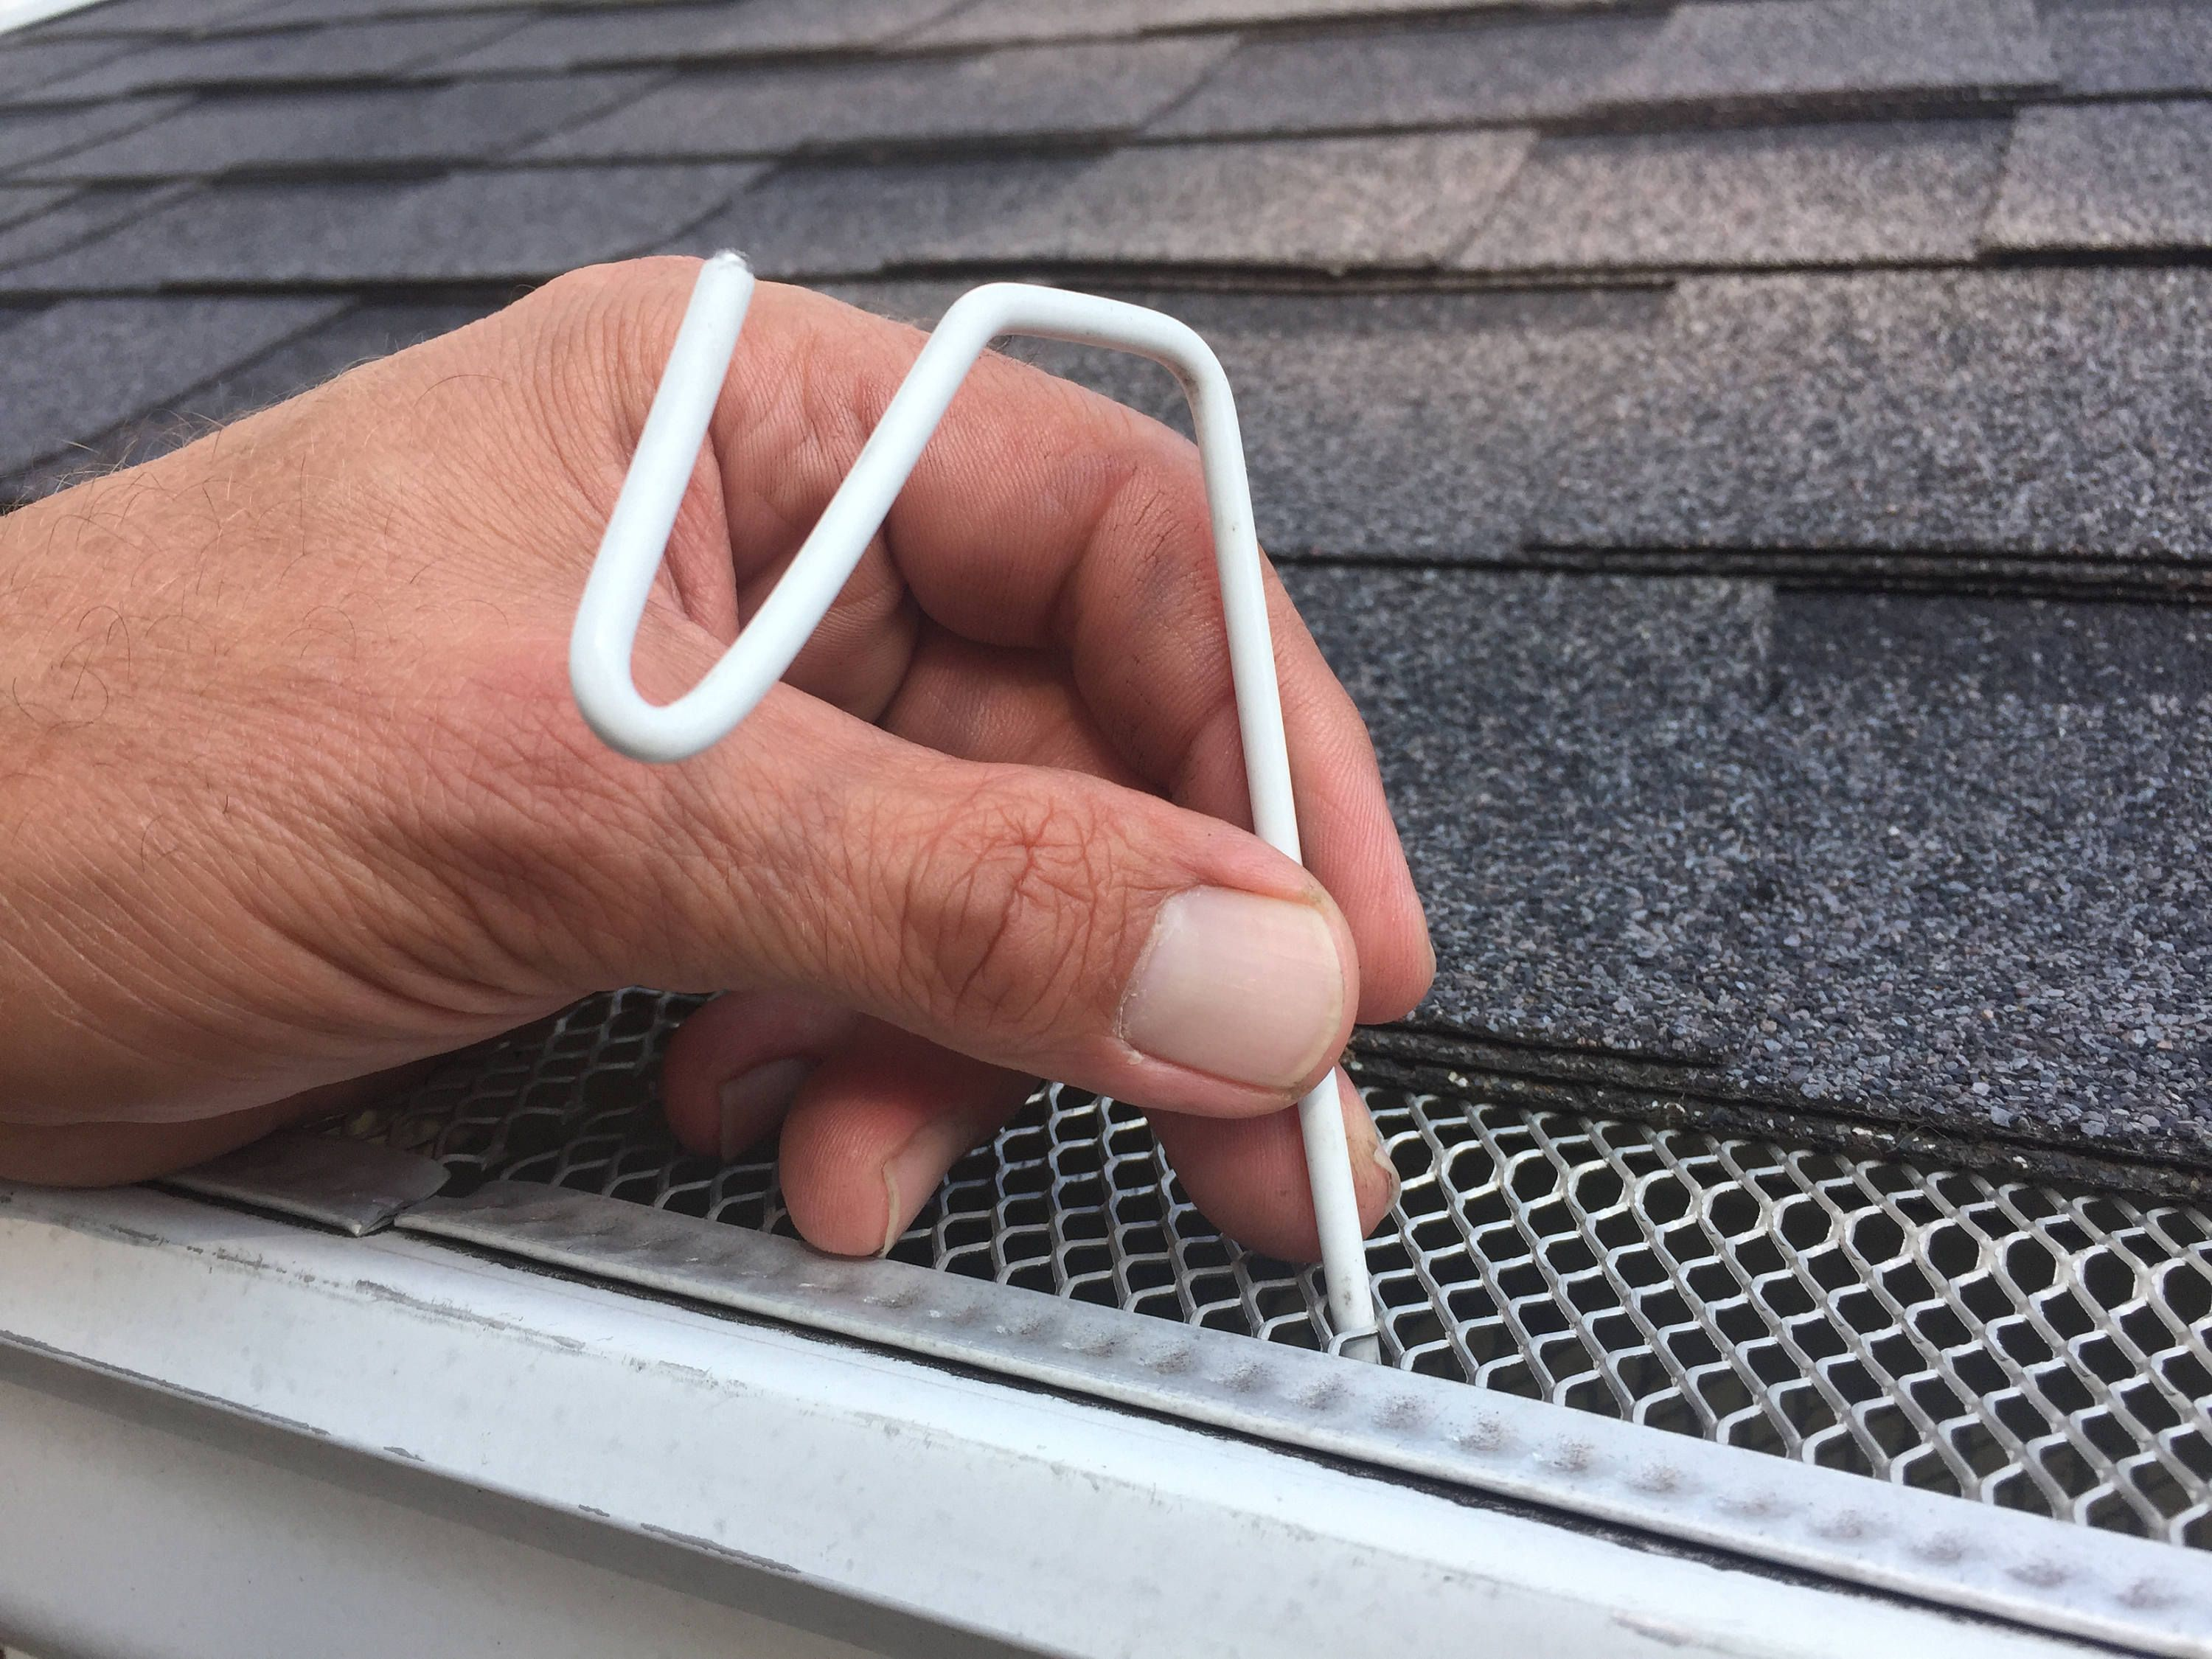 50 Ct White Christmas Hook Christmas Light Hanger For Gutters With Mesh Leaf Gutter Guard In 2020 Gutter Guard Light Hanger Christmas Light Hanger